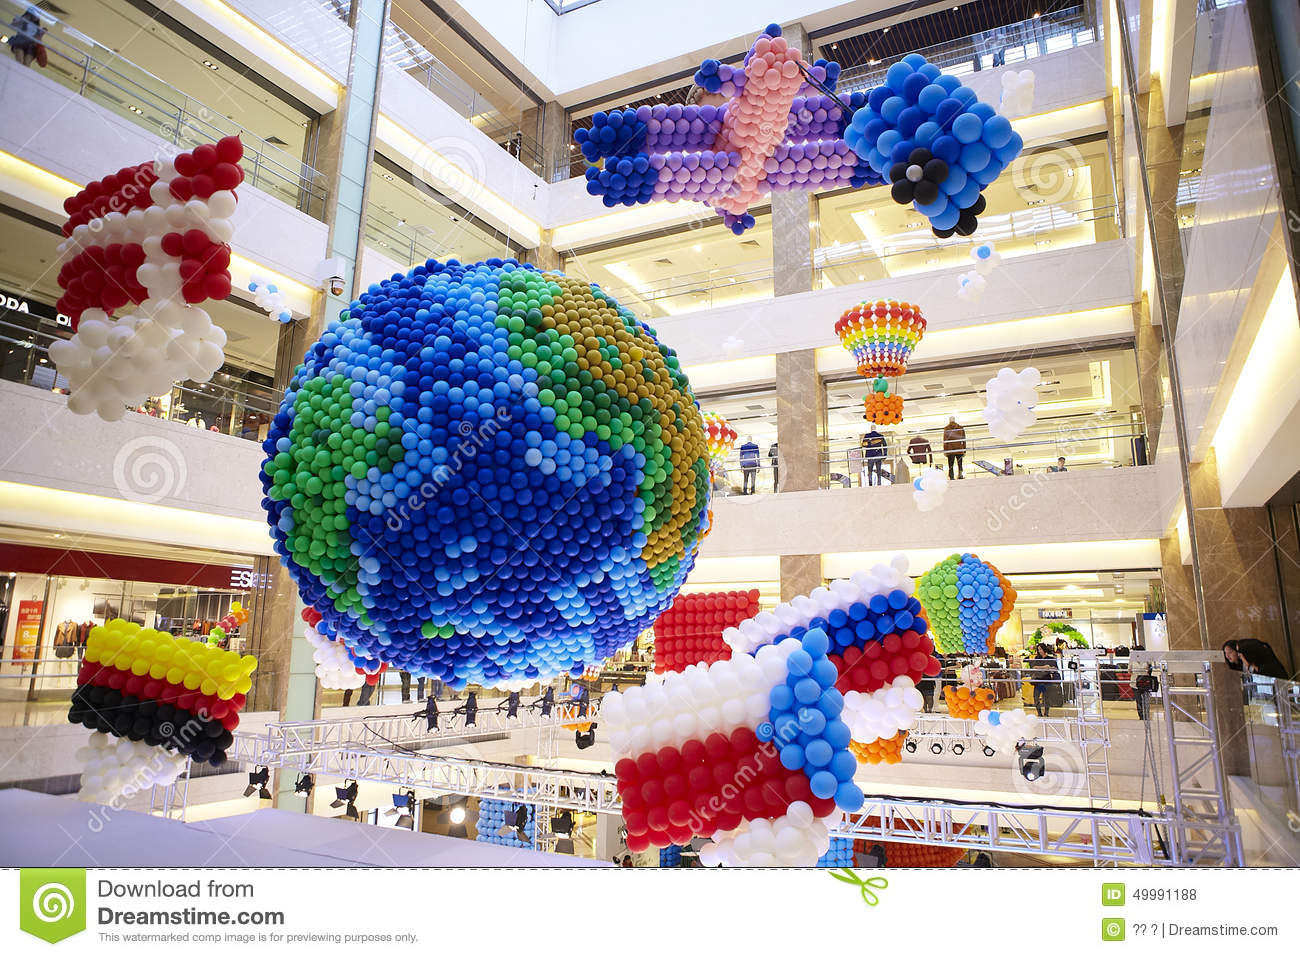 Balloons decoration at mall gallery earth country flag for Balloon decoration gallery